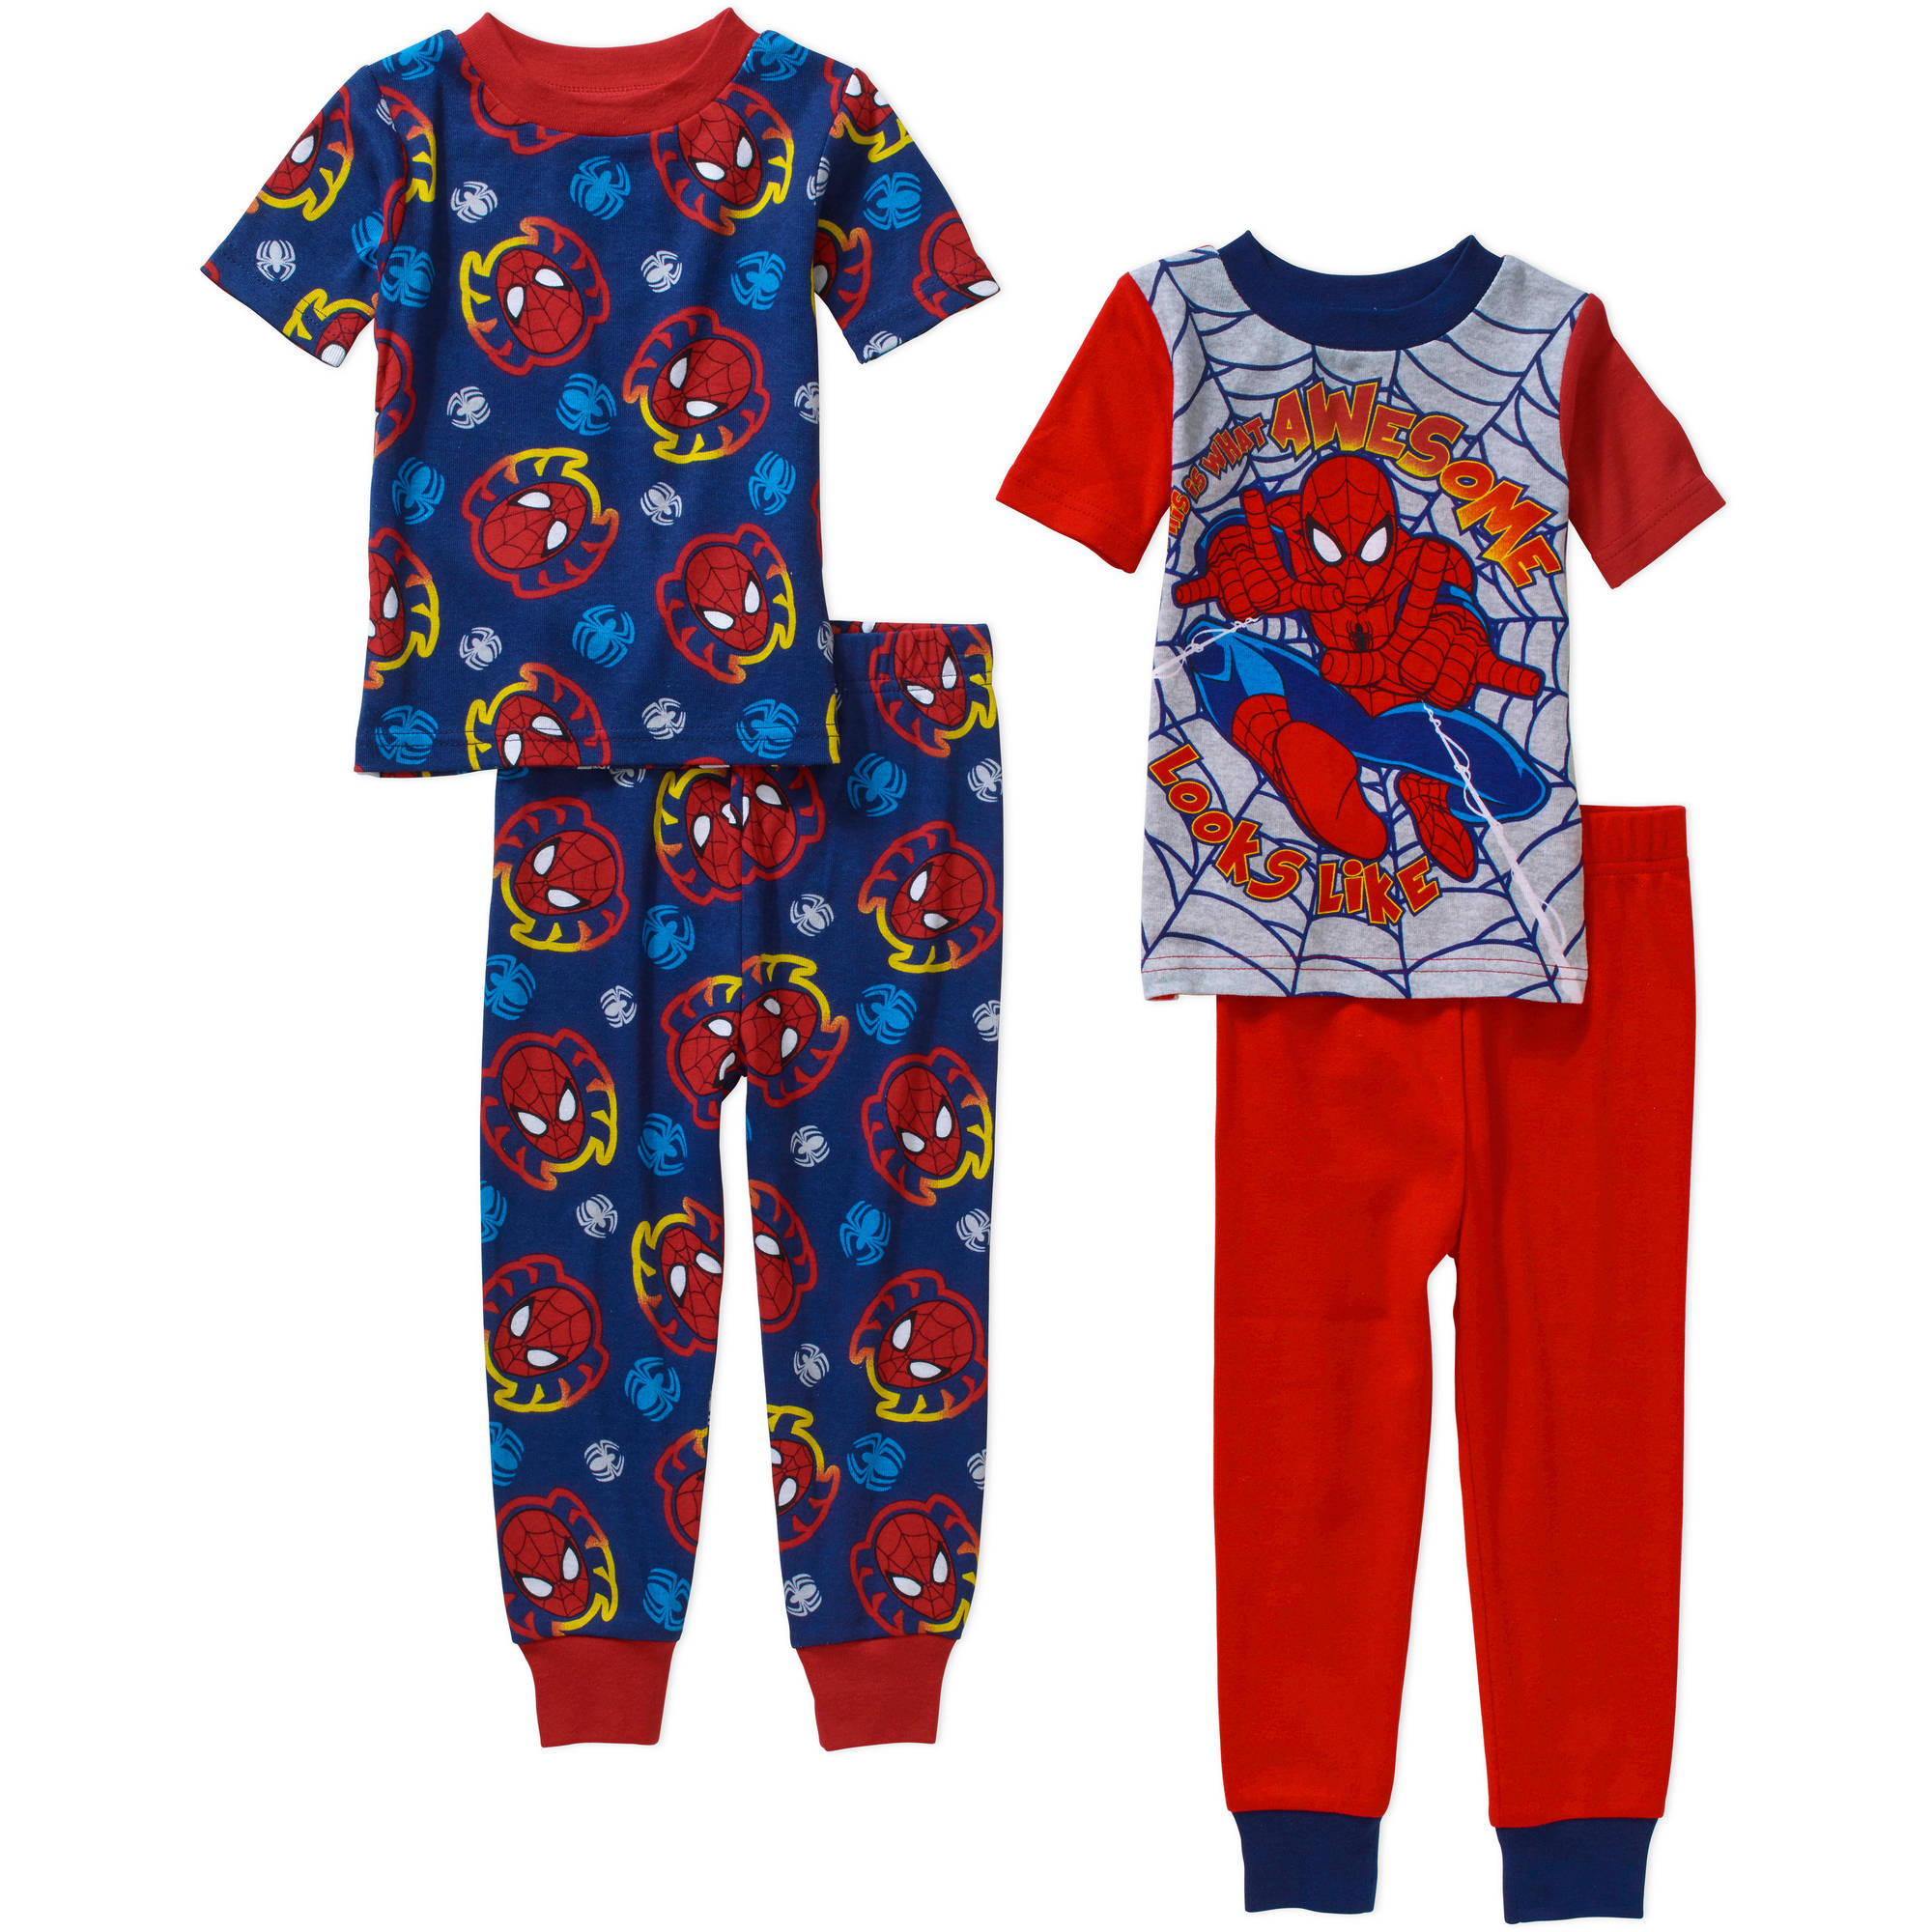 Spiderman Toddler Boy Cotton Tight Fit Short Pajama Sleep Set, 4-Pieces